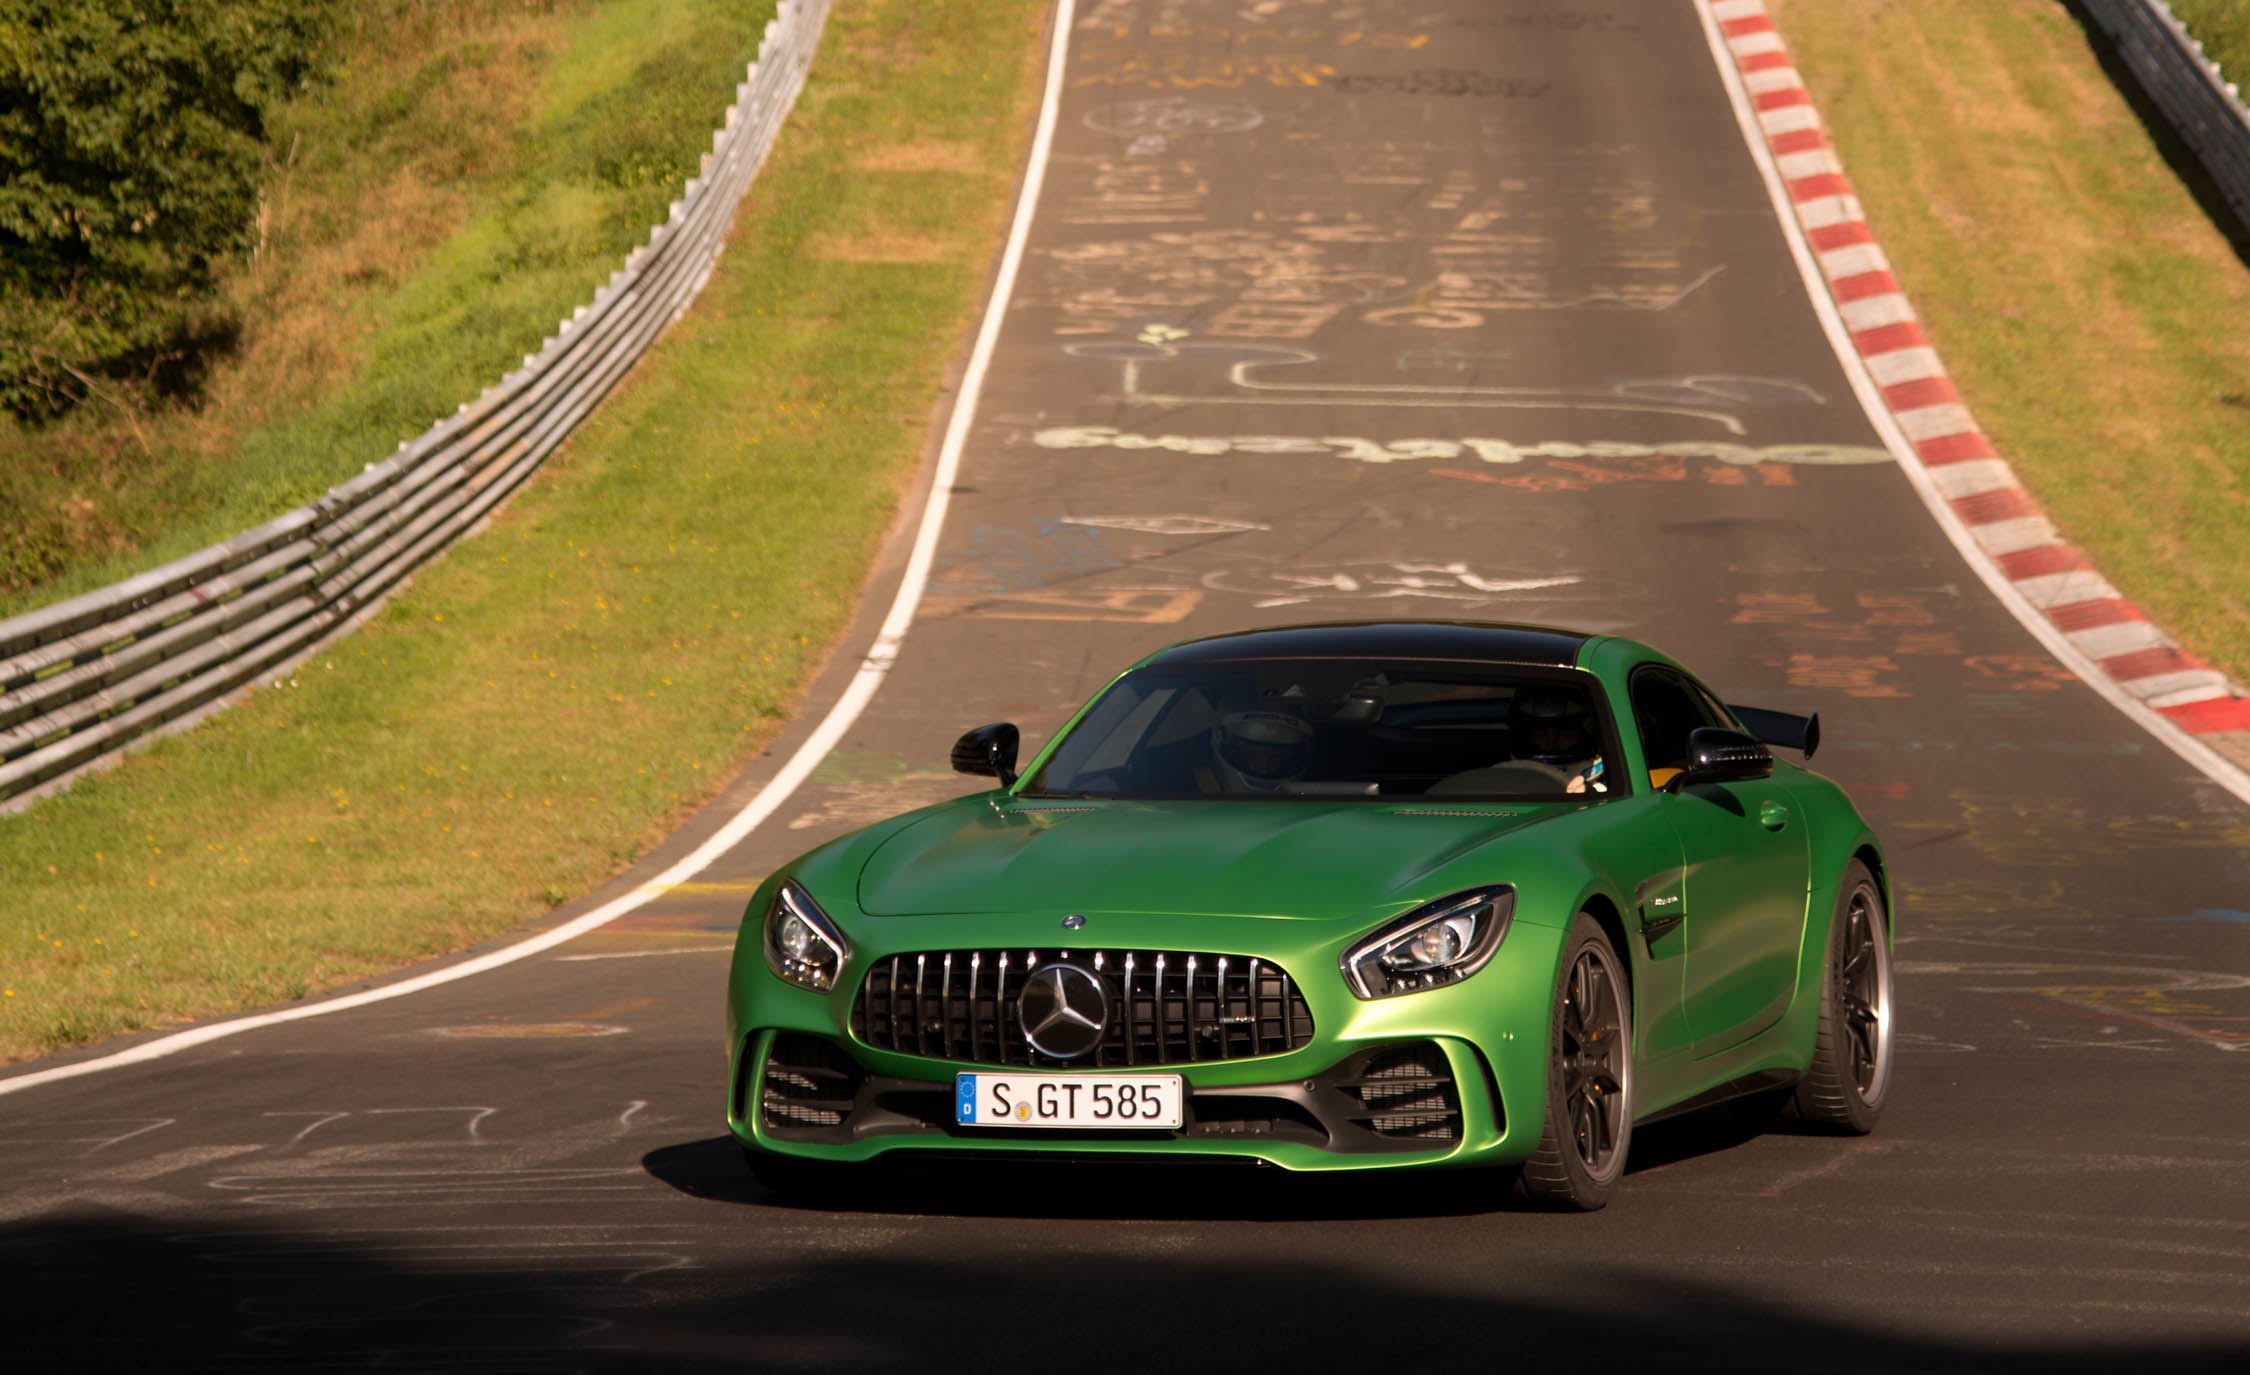 2017 Mercedes Amg Gt R Exterior (Photo 10 of 22)